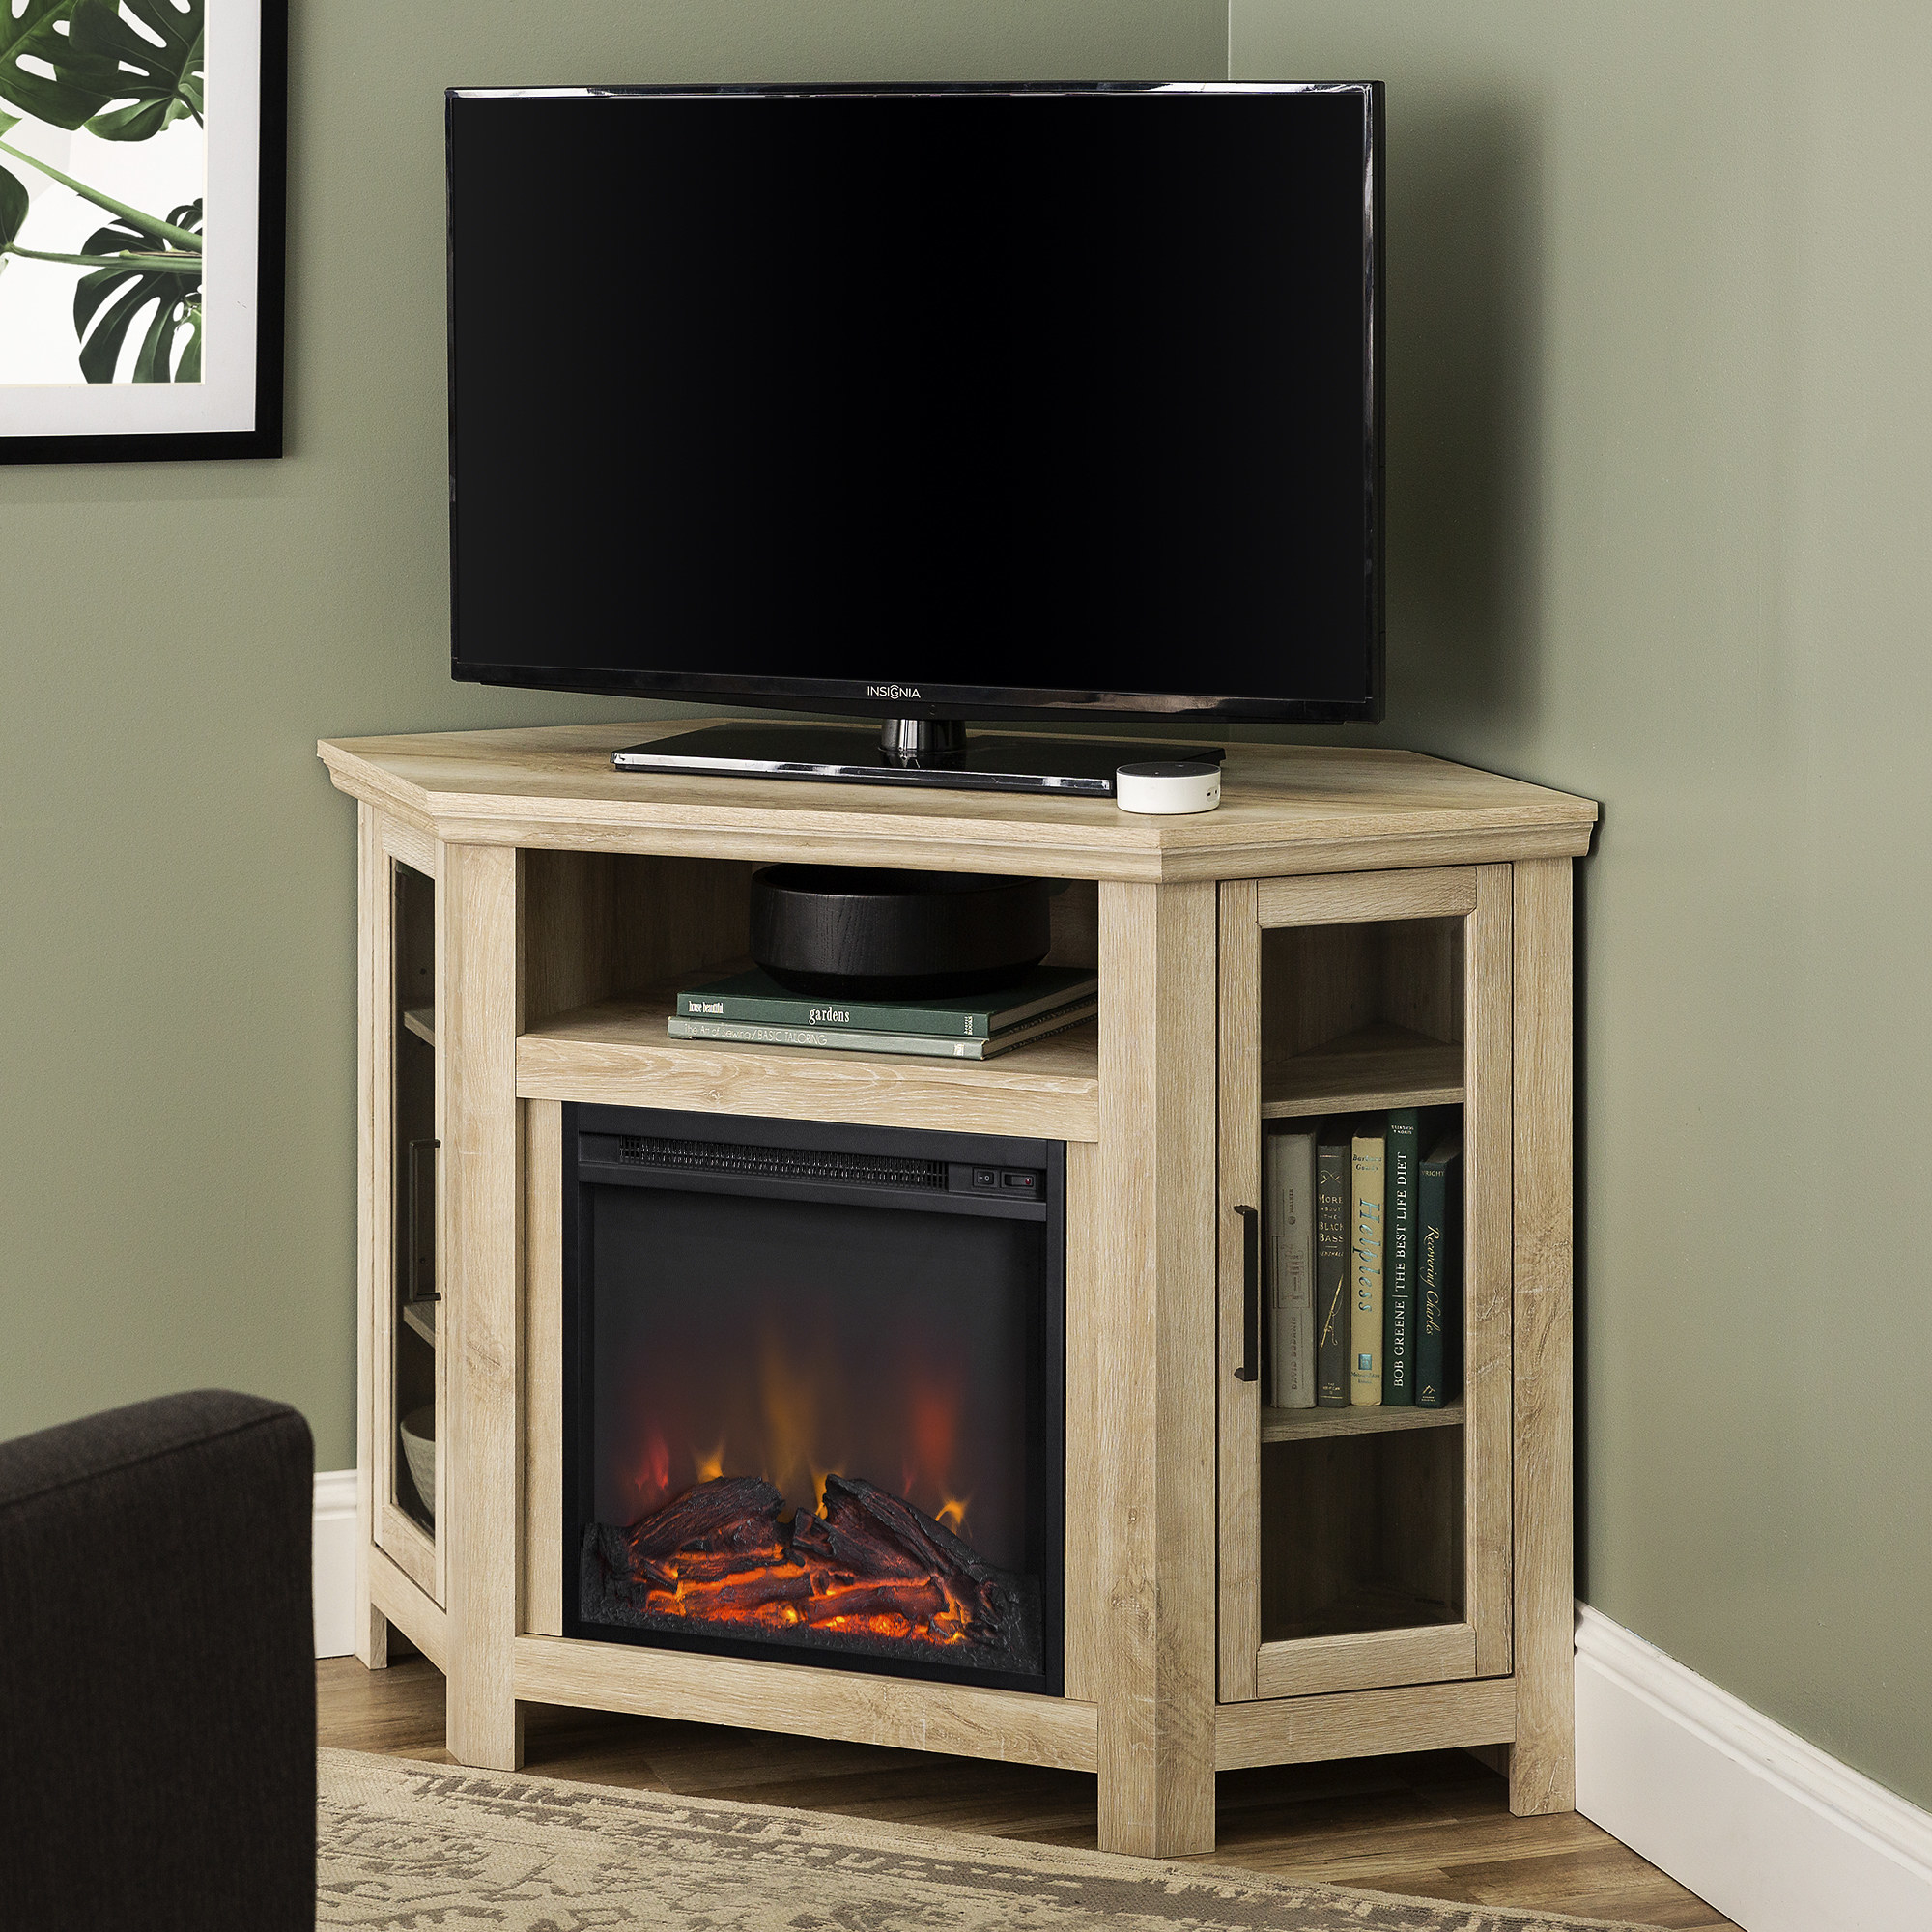 corner TV stand with electric fireplace and TV on top